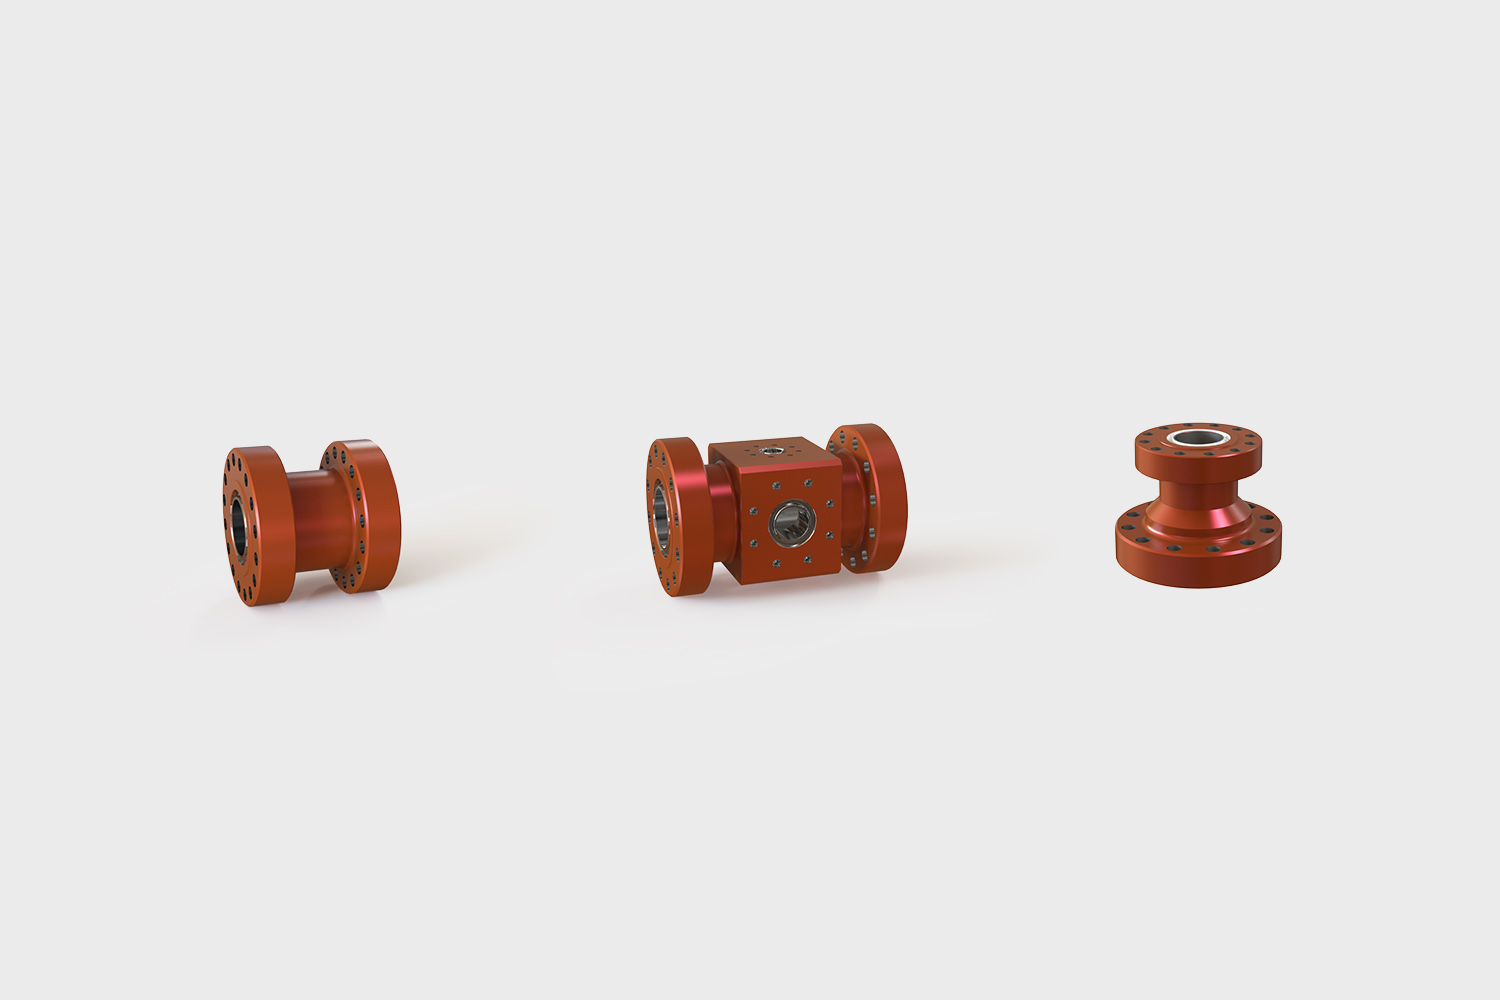 API 6A Type 6B/6BX Spools, Adapter Spools, Spacer, Drilling Spools